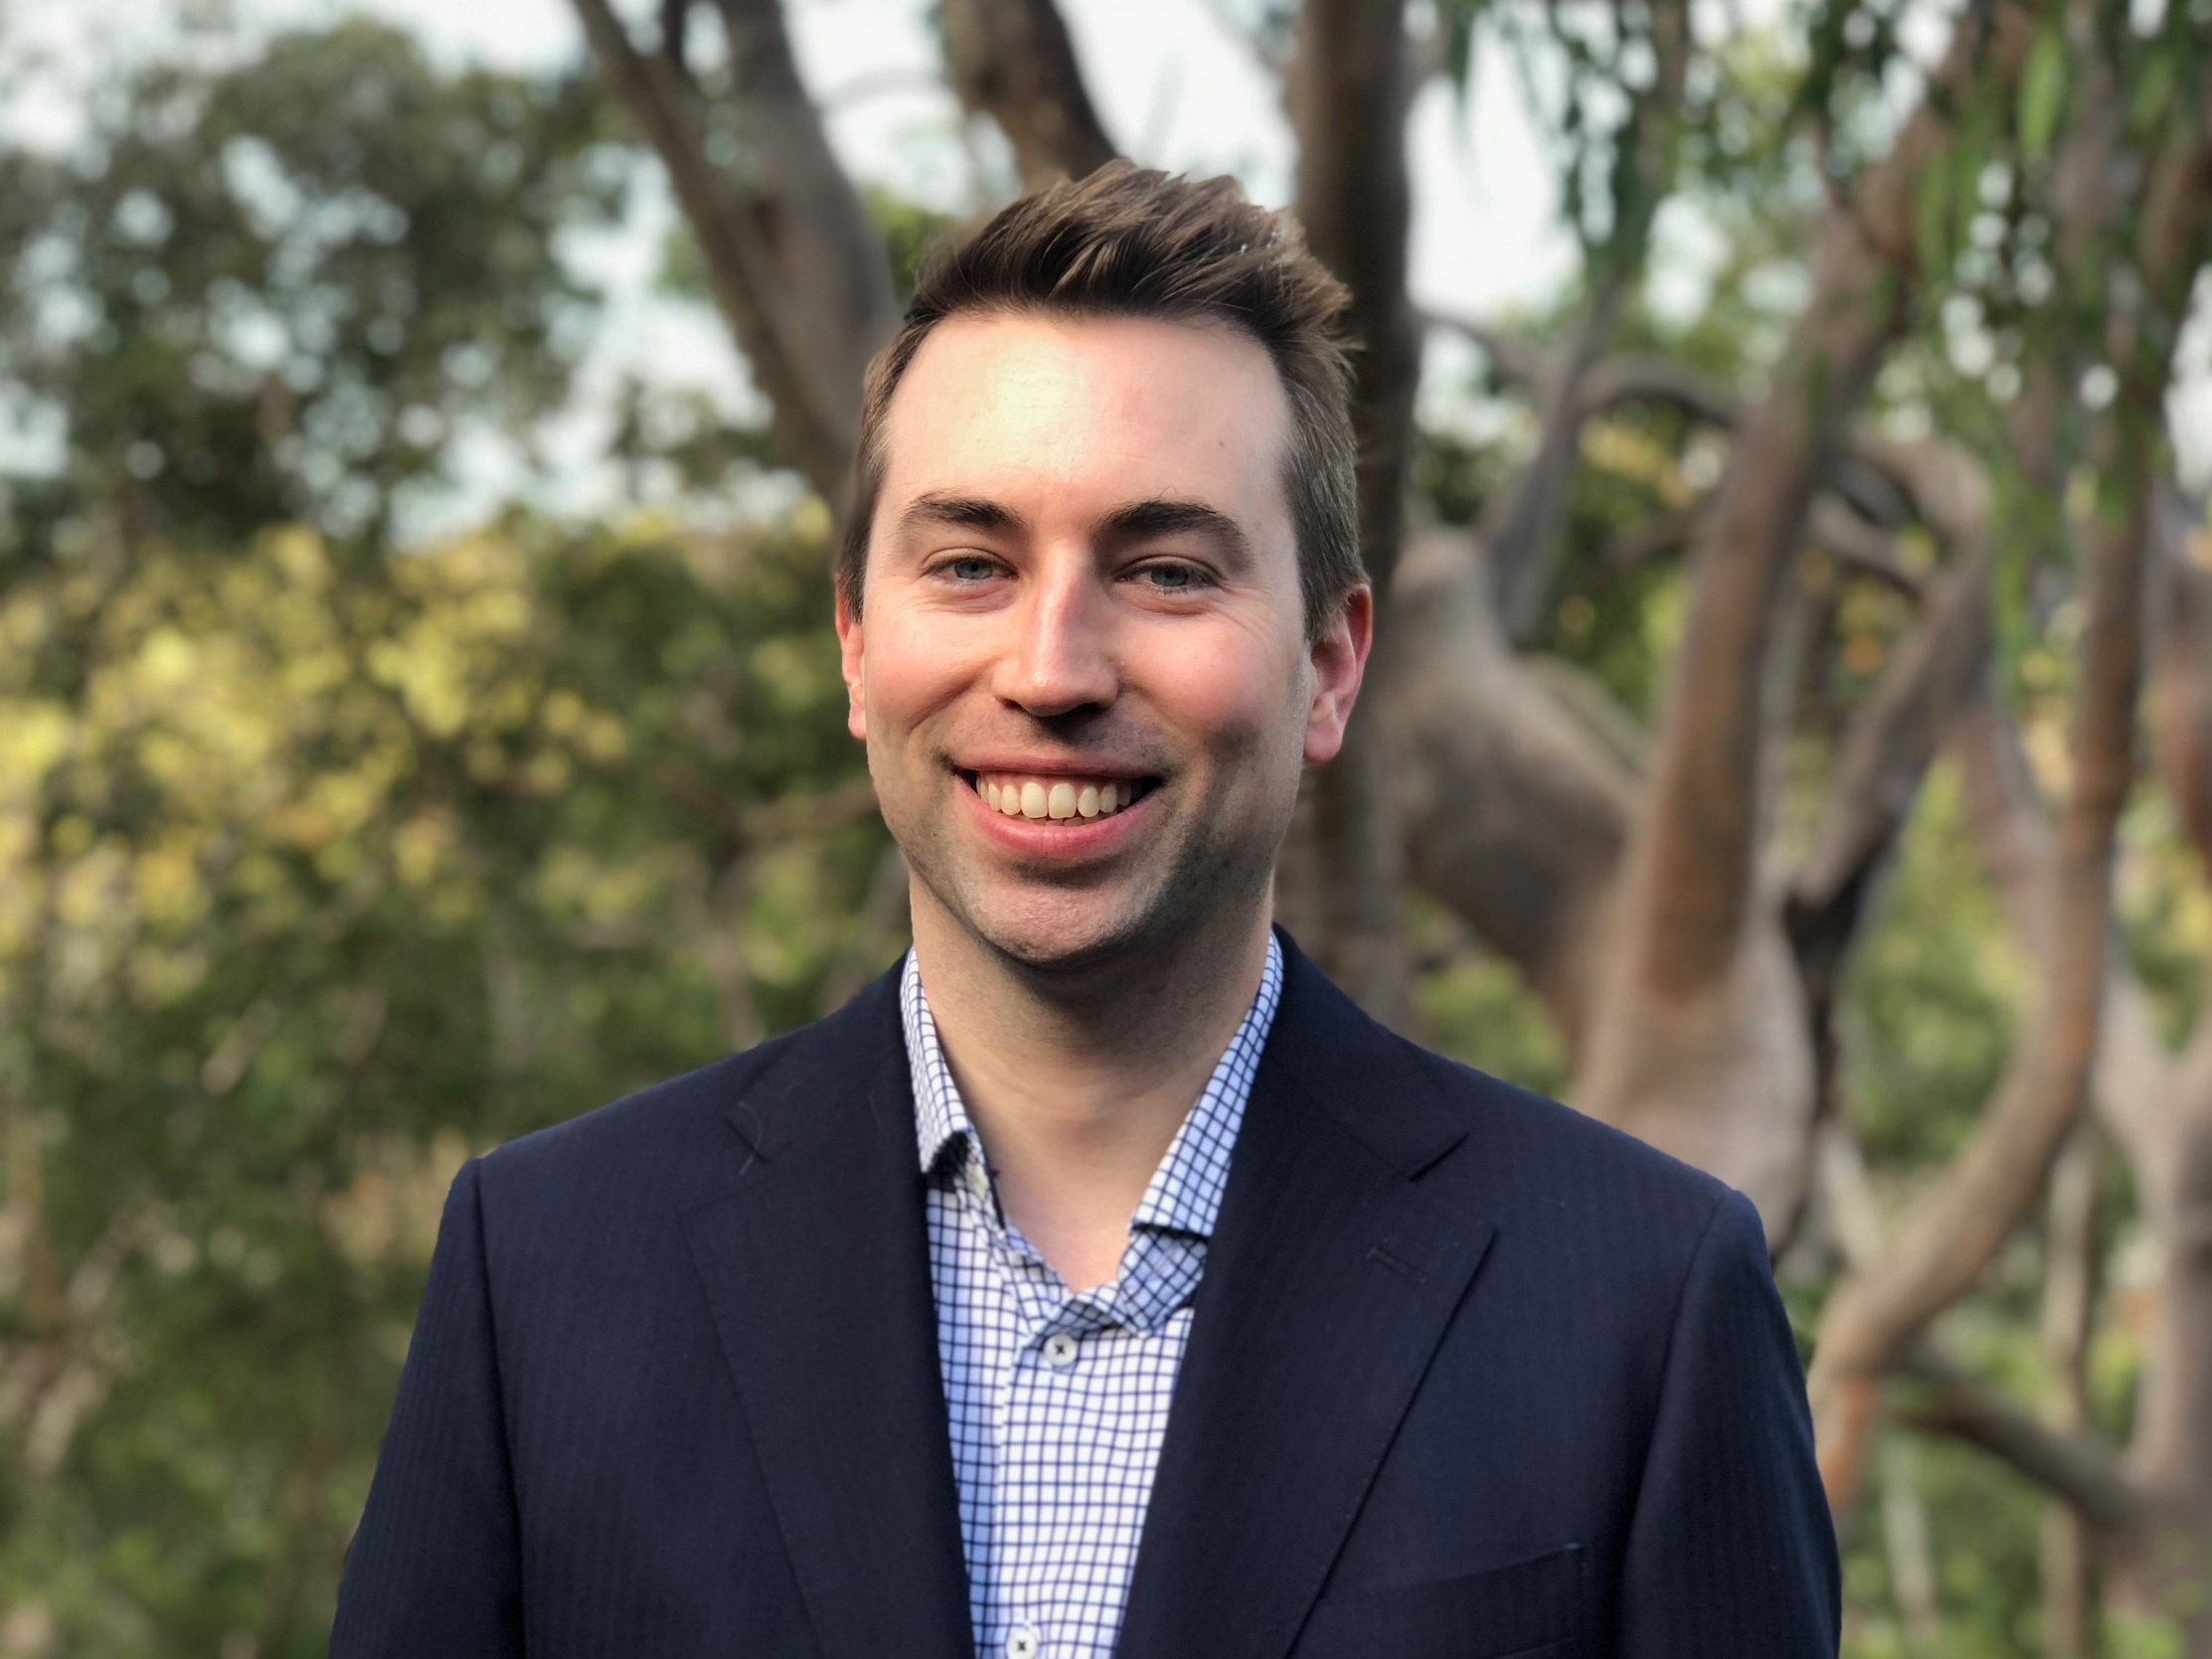 Dr. Chris Chappel - Specialist GP and Functional Medicine doctor with interests in Diabetes Reversal, Mental Health, Weight Loss, and Men's Health Issues.